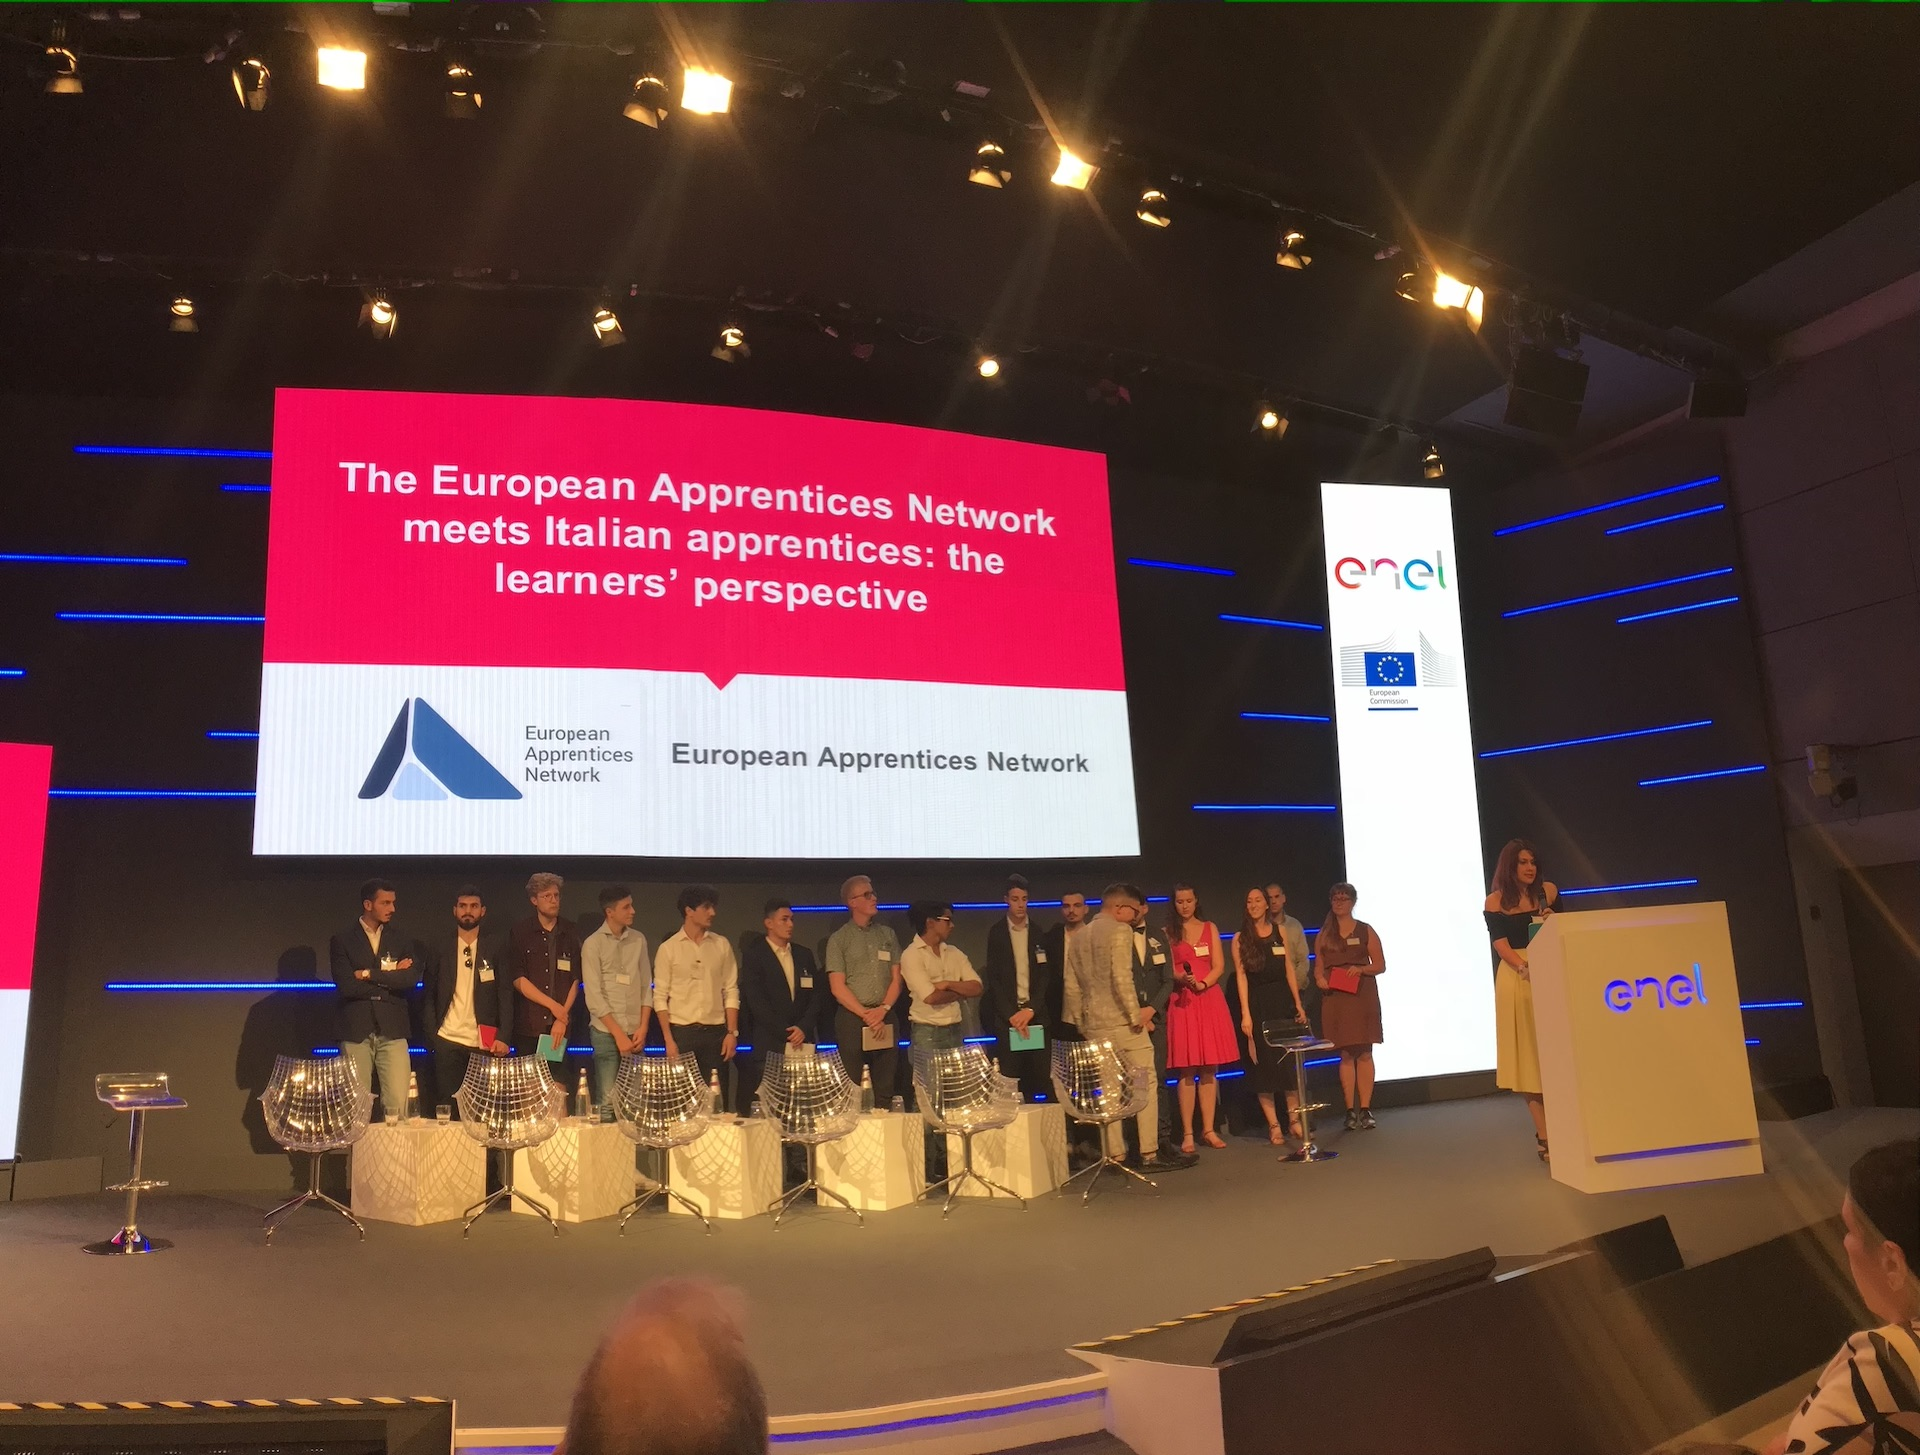 MoveIt Members Participating in European Apprentices Network